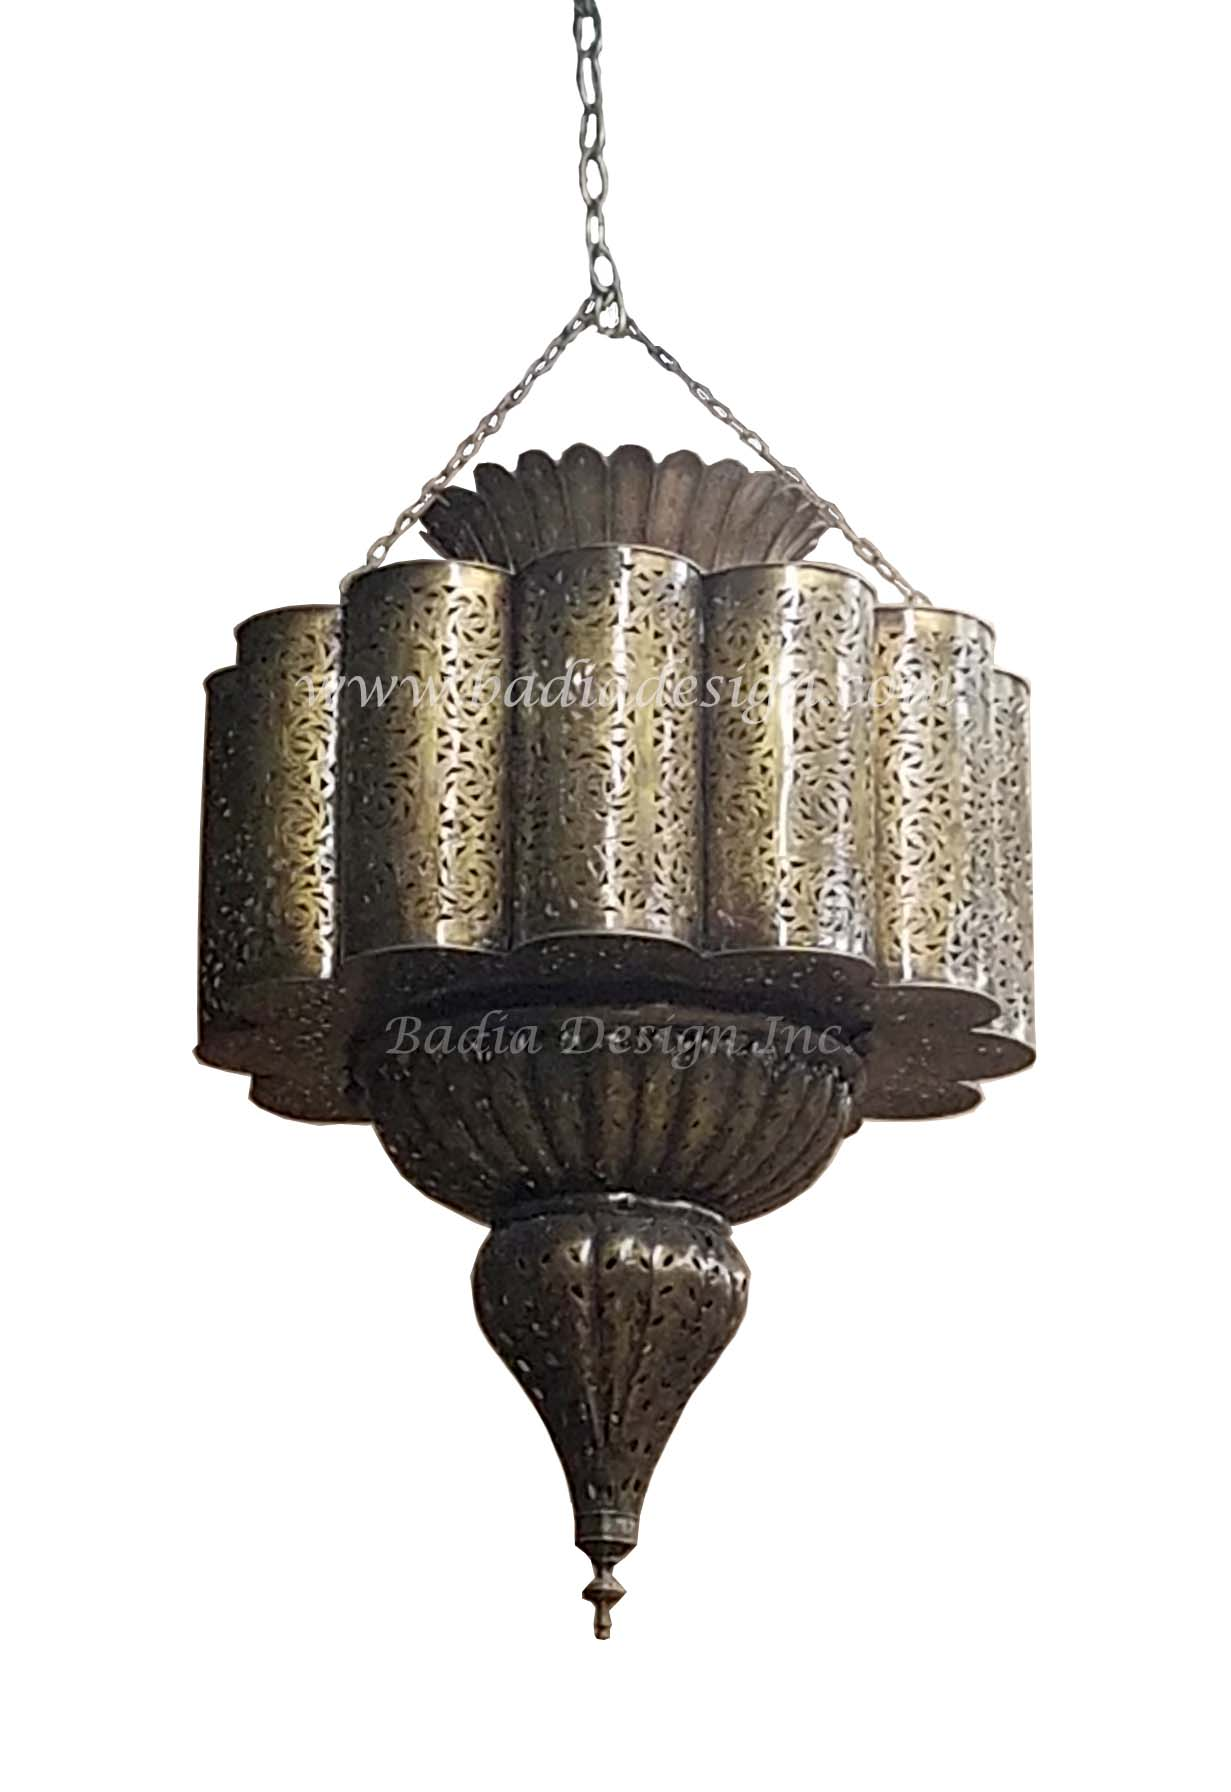 Moroccan hand punched brass chandelier from badia design inc - Moorish chandelier ...